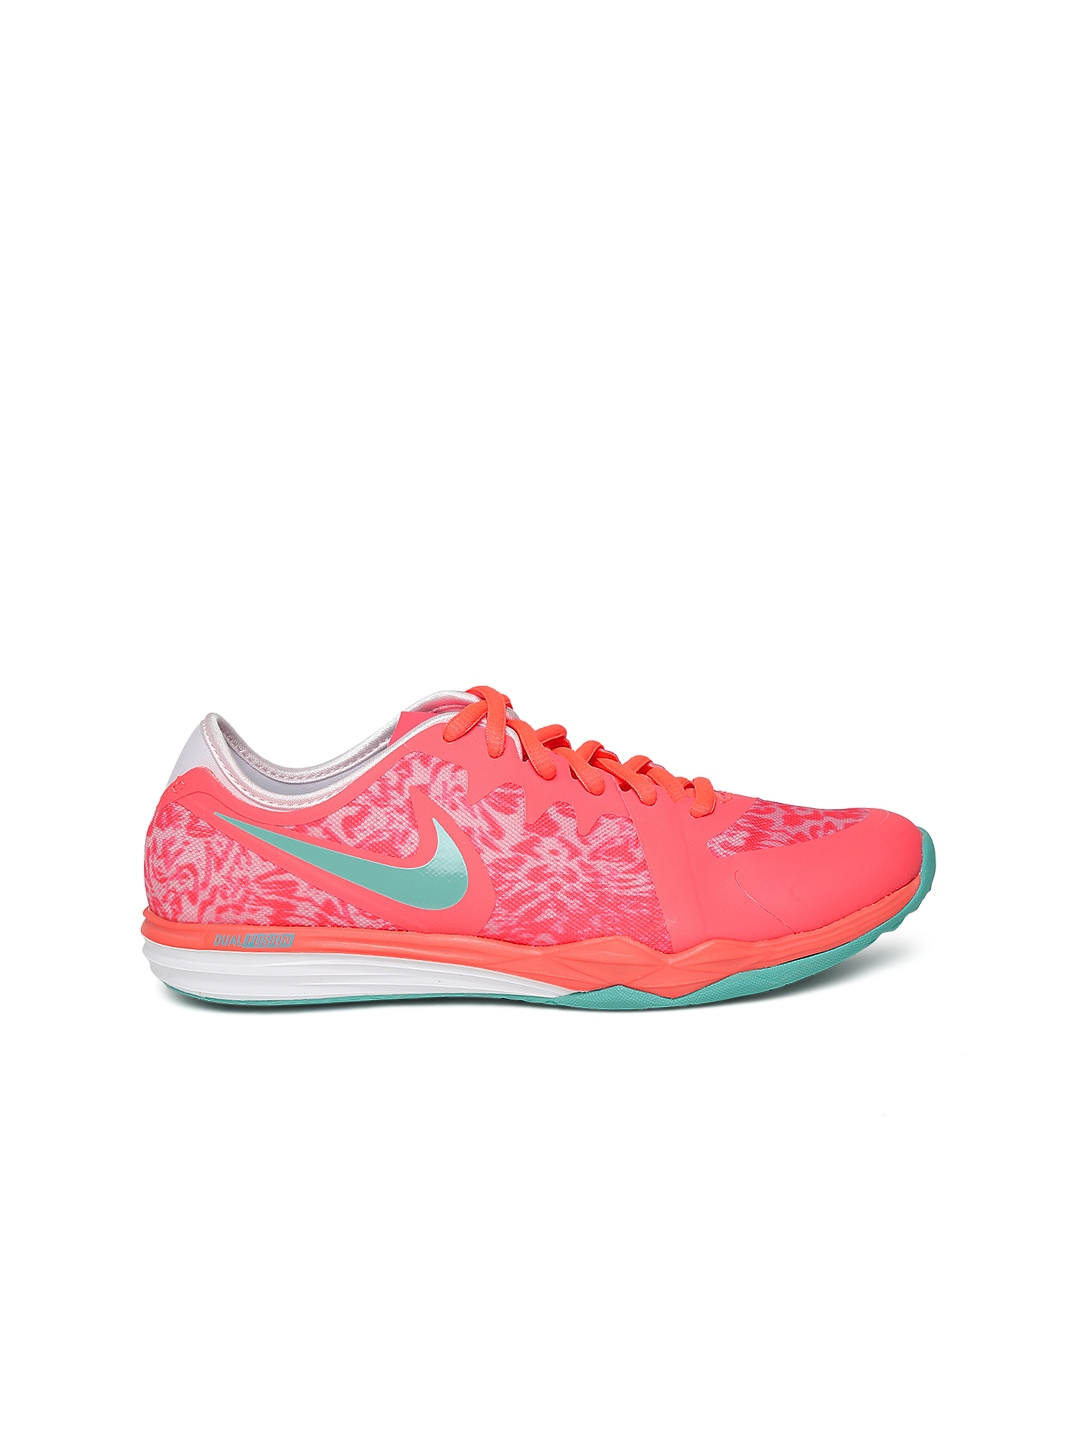 Fantastic  Shoe Shoes Nike Shoess Nike Shoes Nikes Nike Free Run Neon Nike